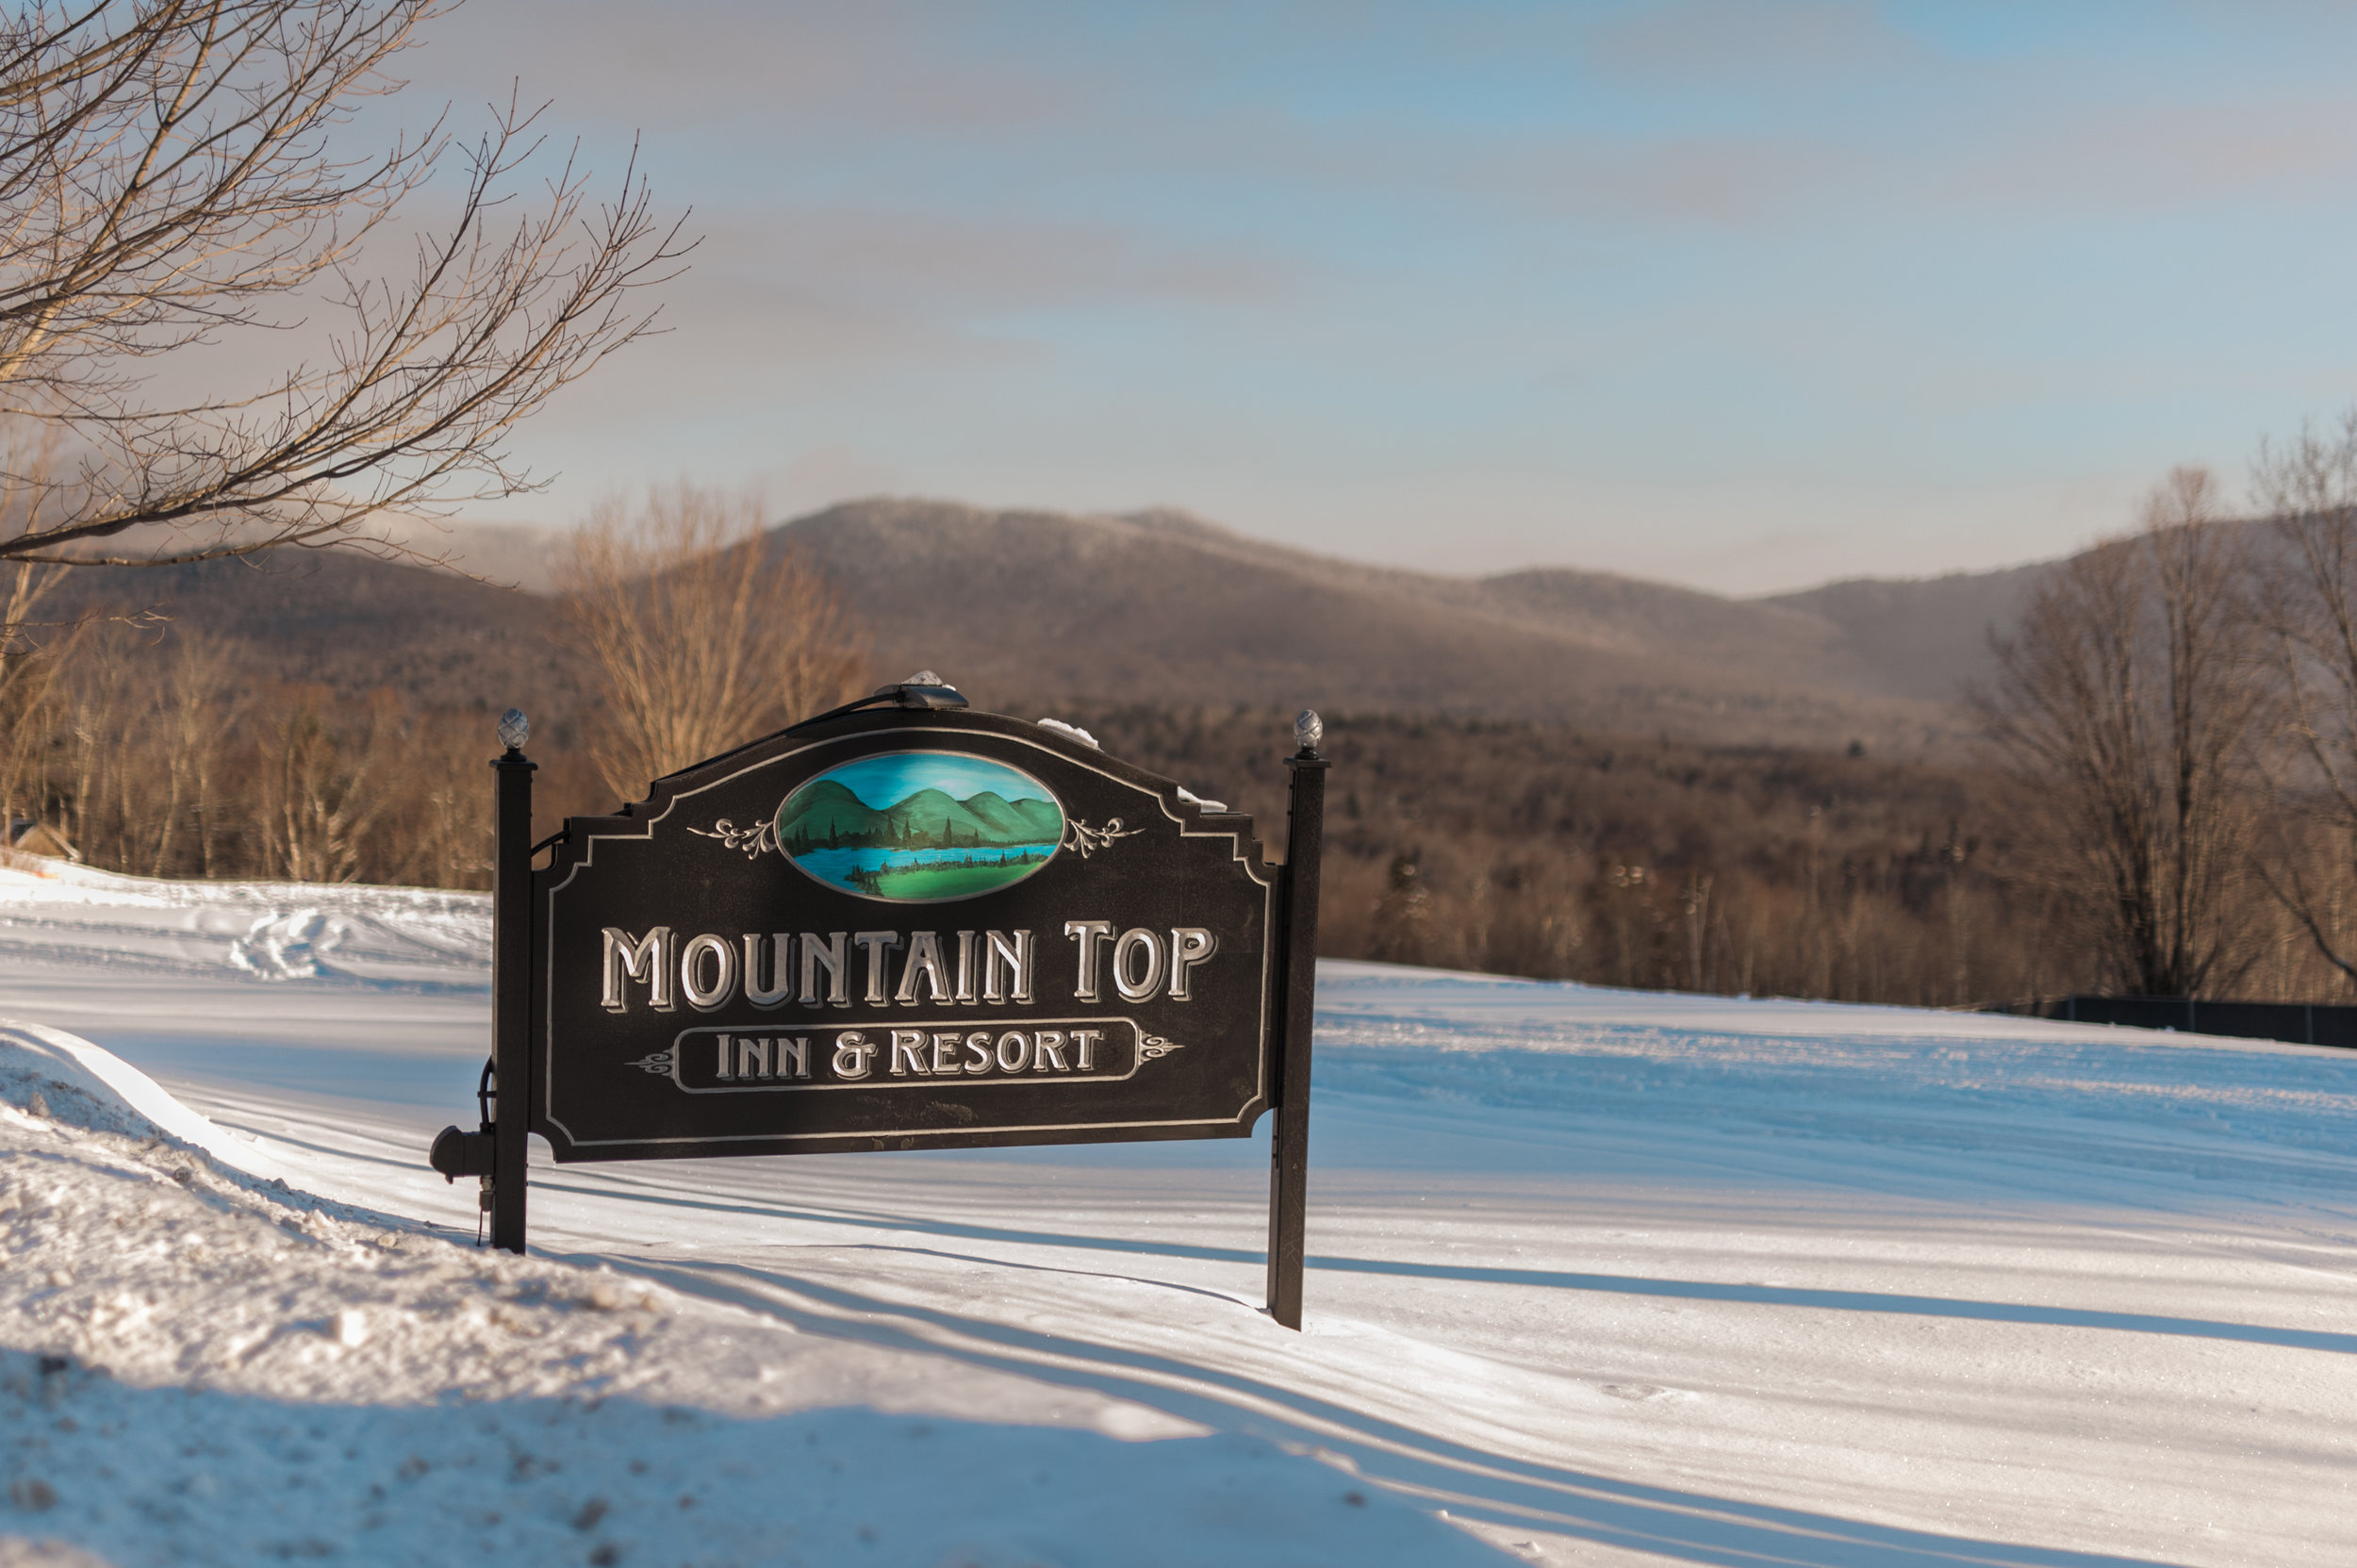 The Mountain Top Inn welcome sign